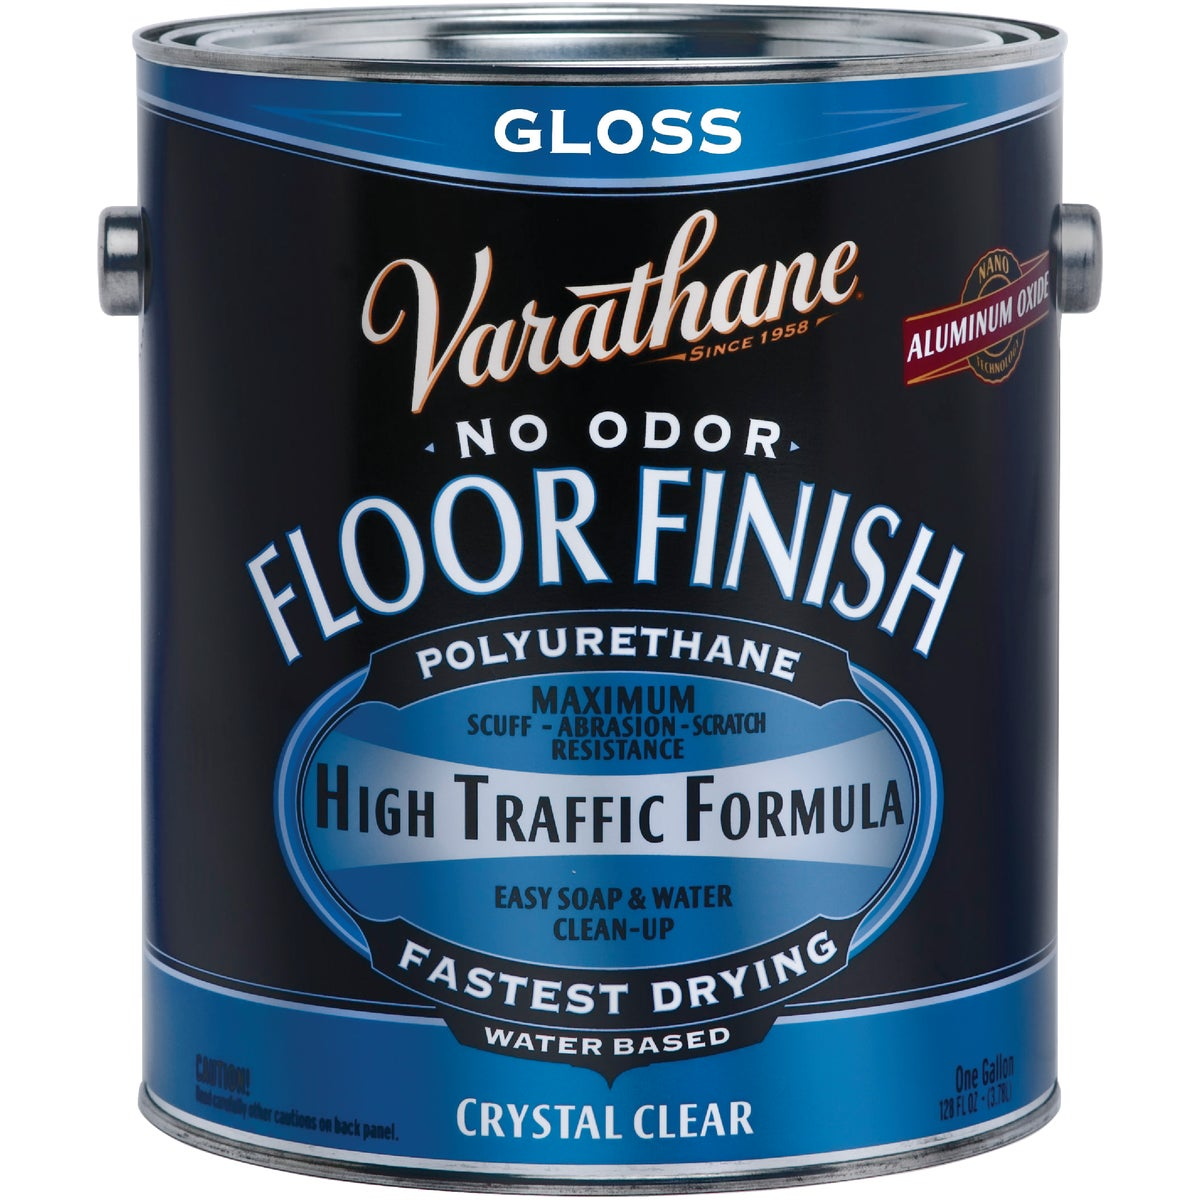 INT GLS W/B FLOOR FINISH - 230031 by Rustoleum